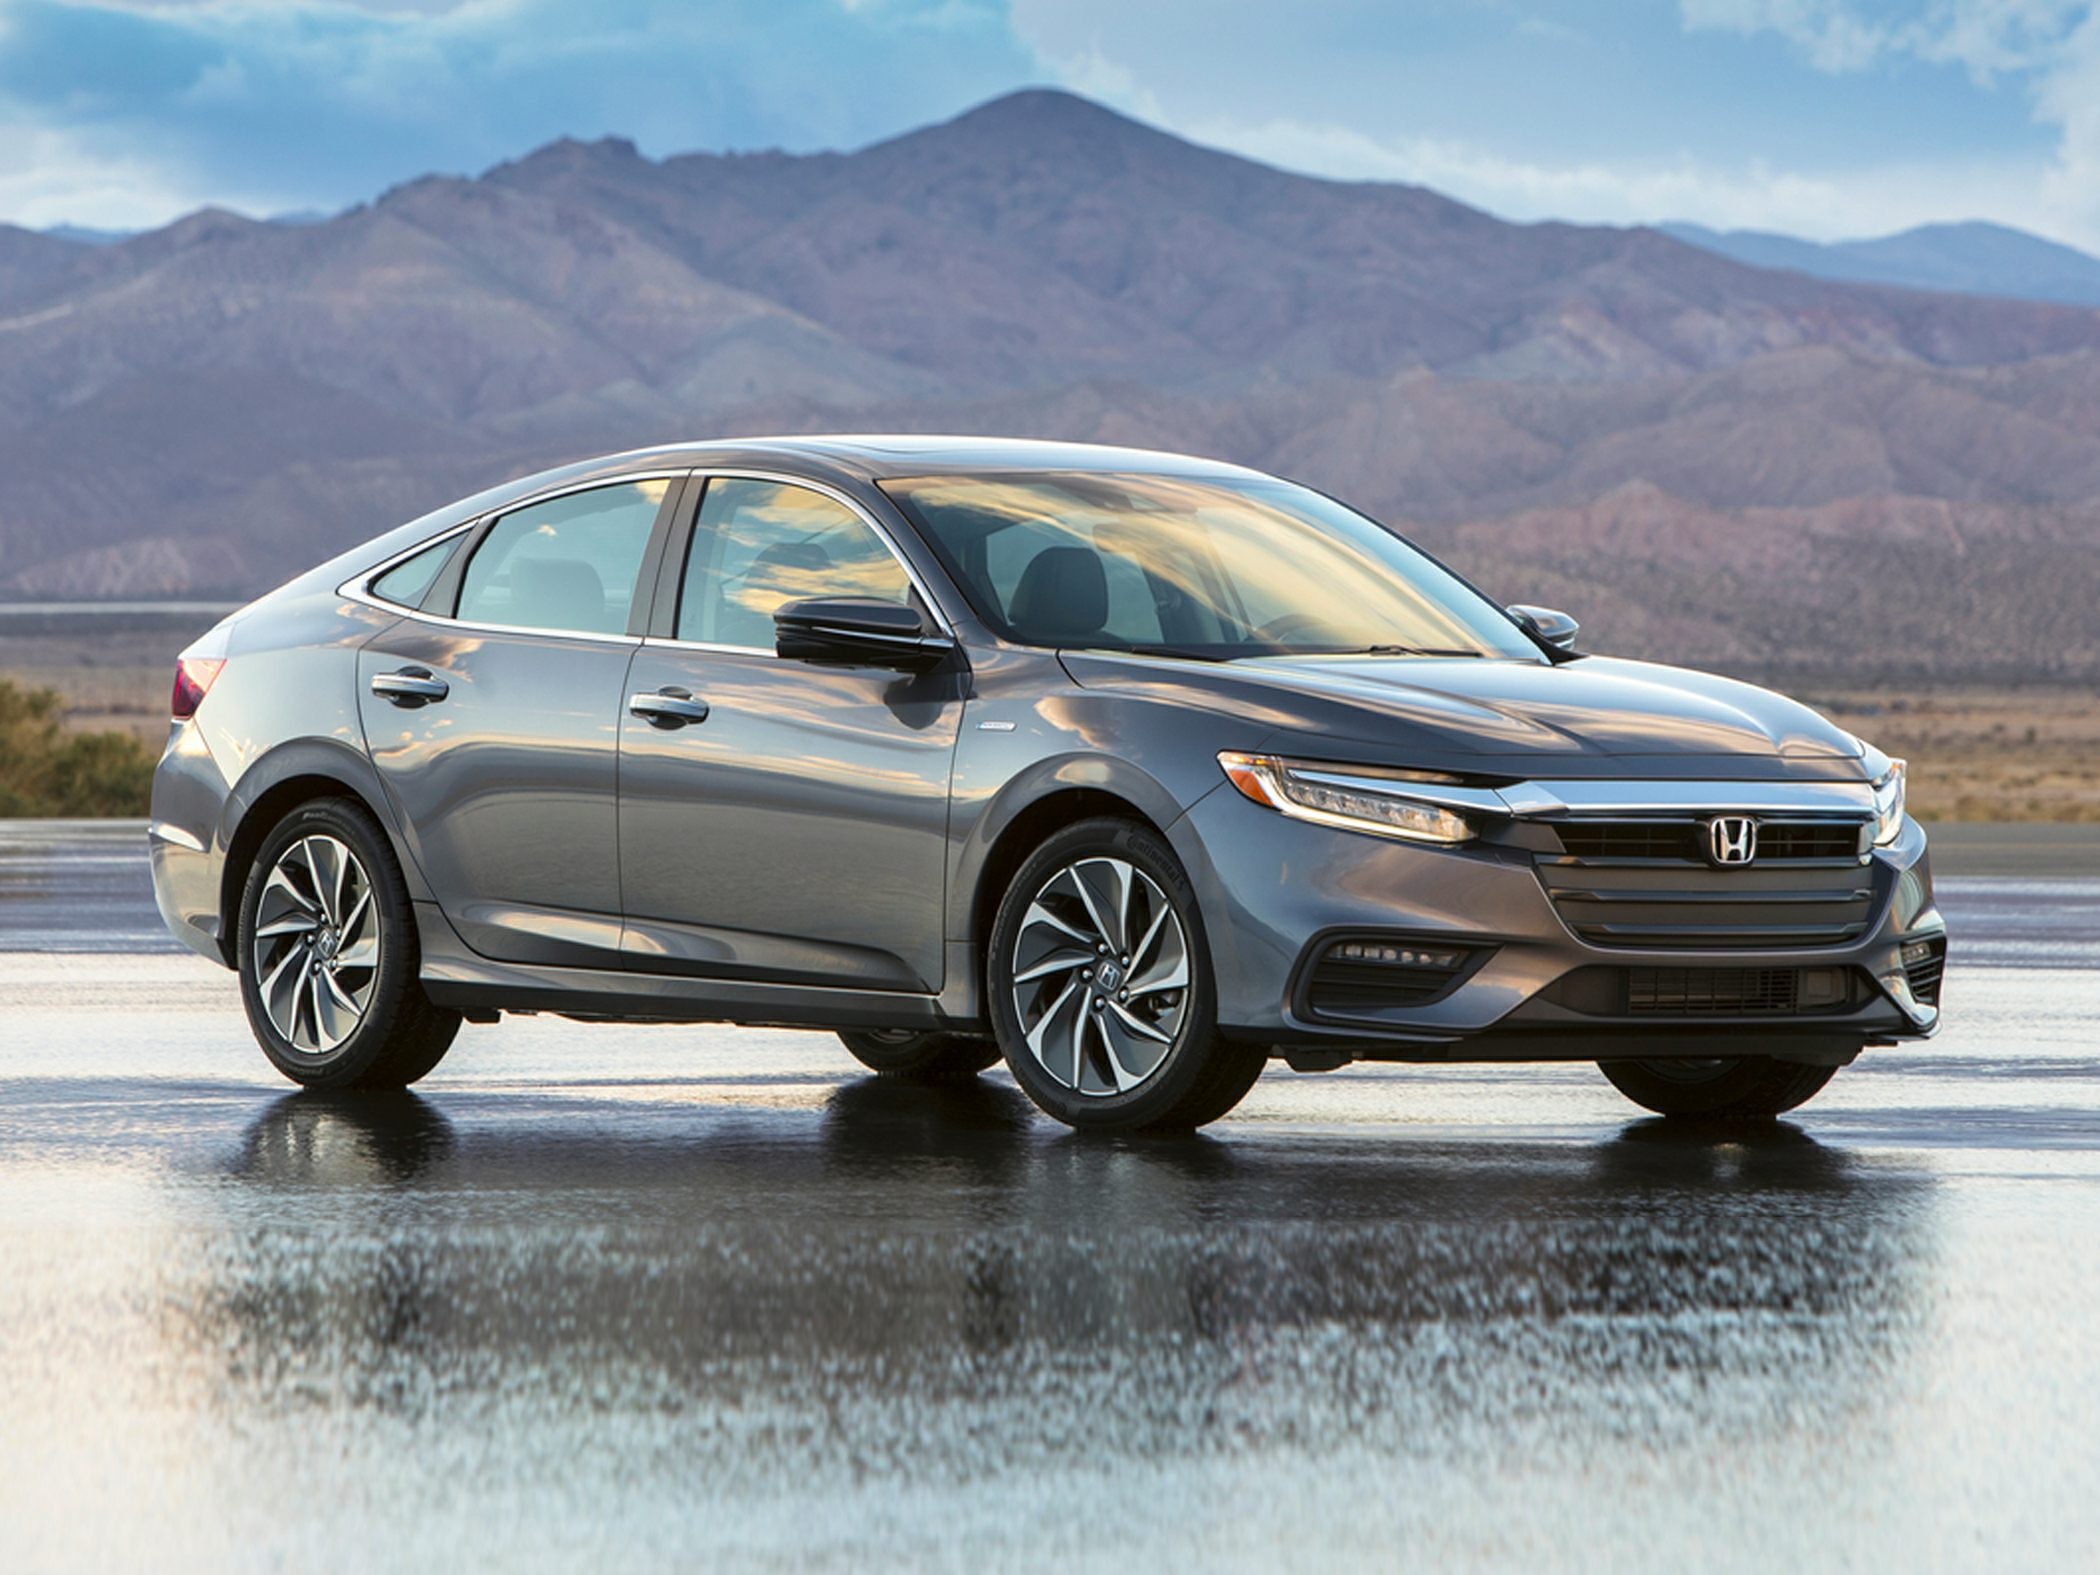 The Original Insight Was First Gasoline Electric Hybrid Available For North American Market Beating Toyota Prius By Six Months